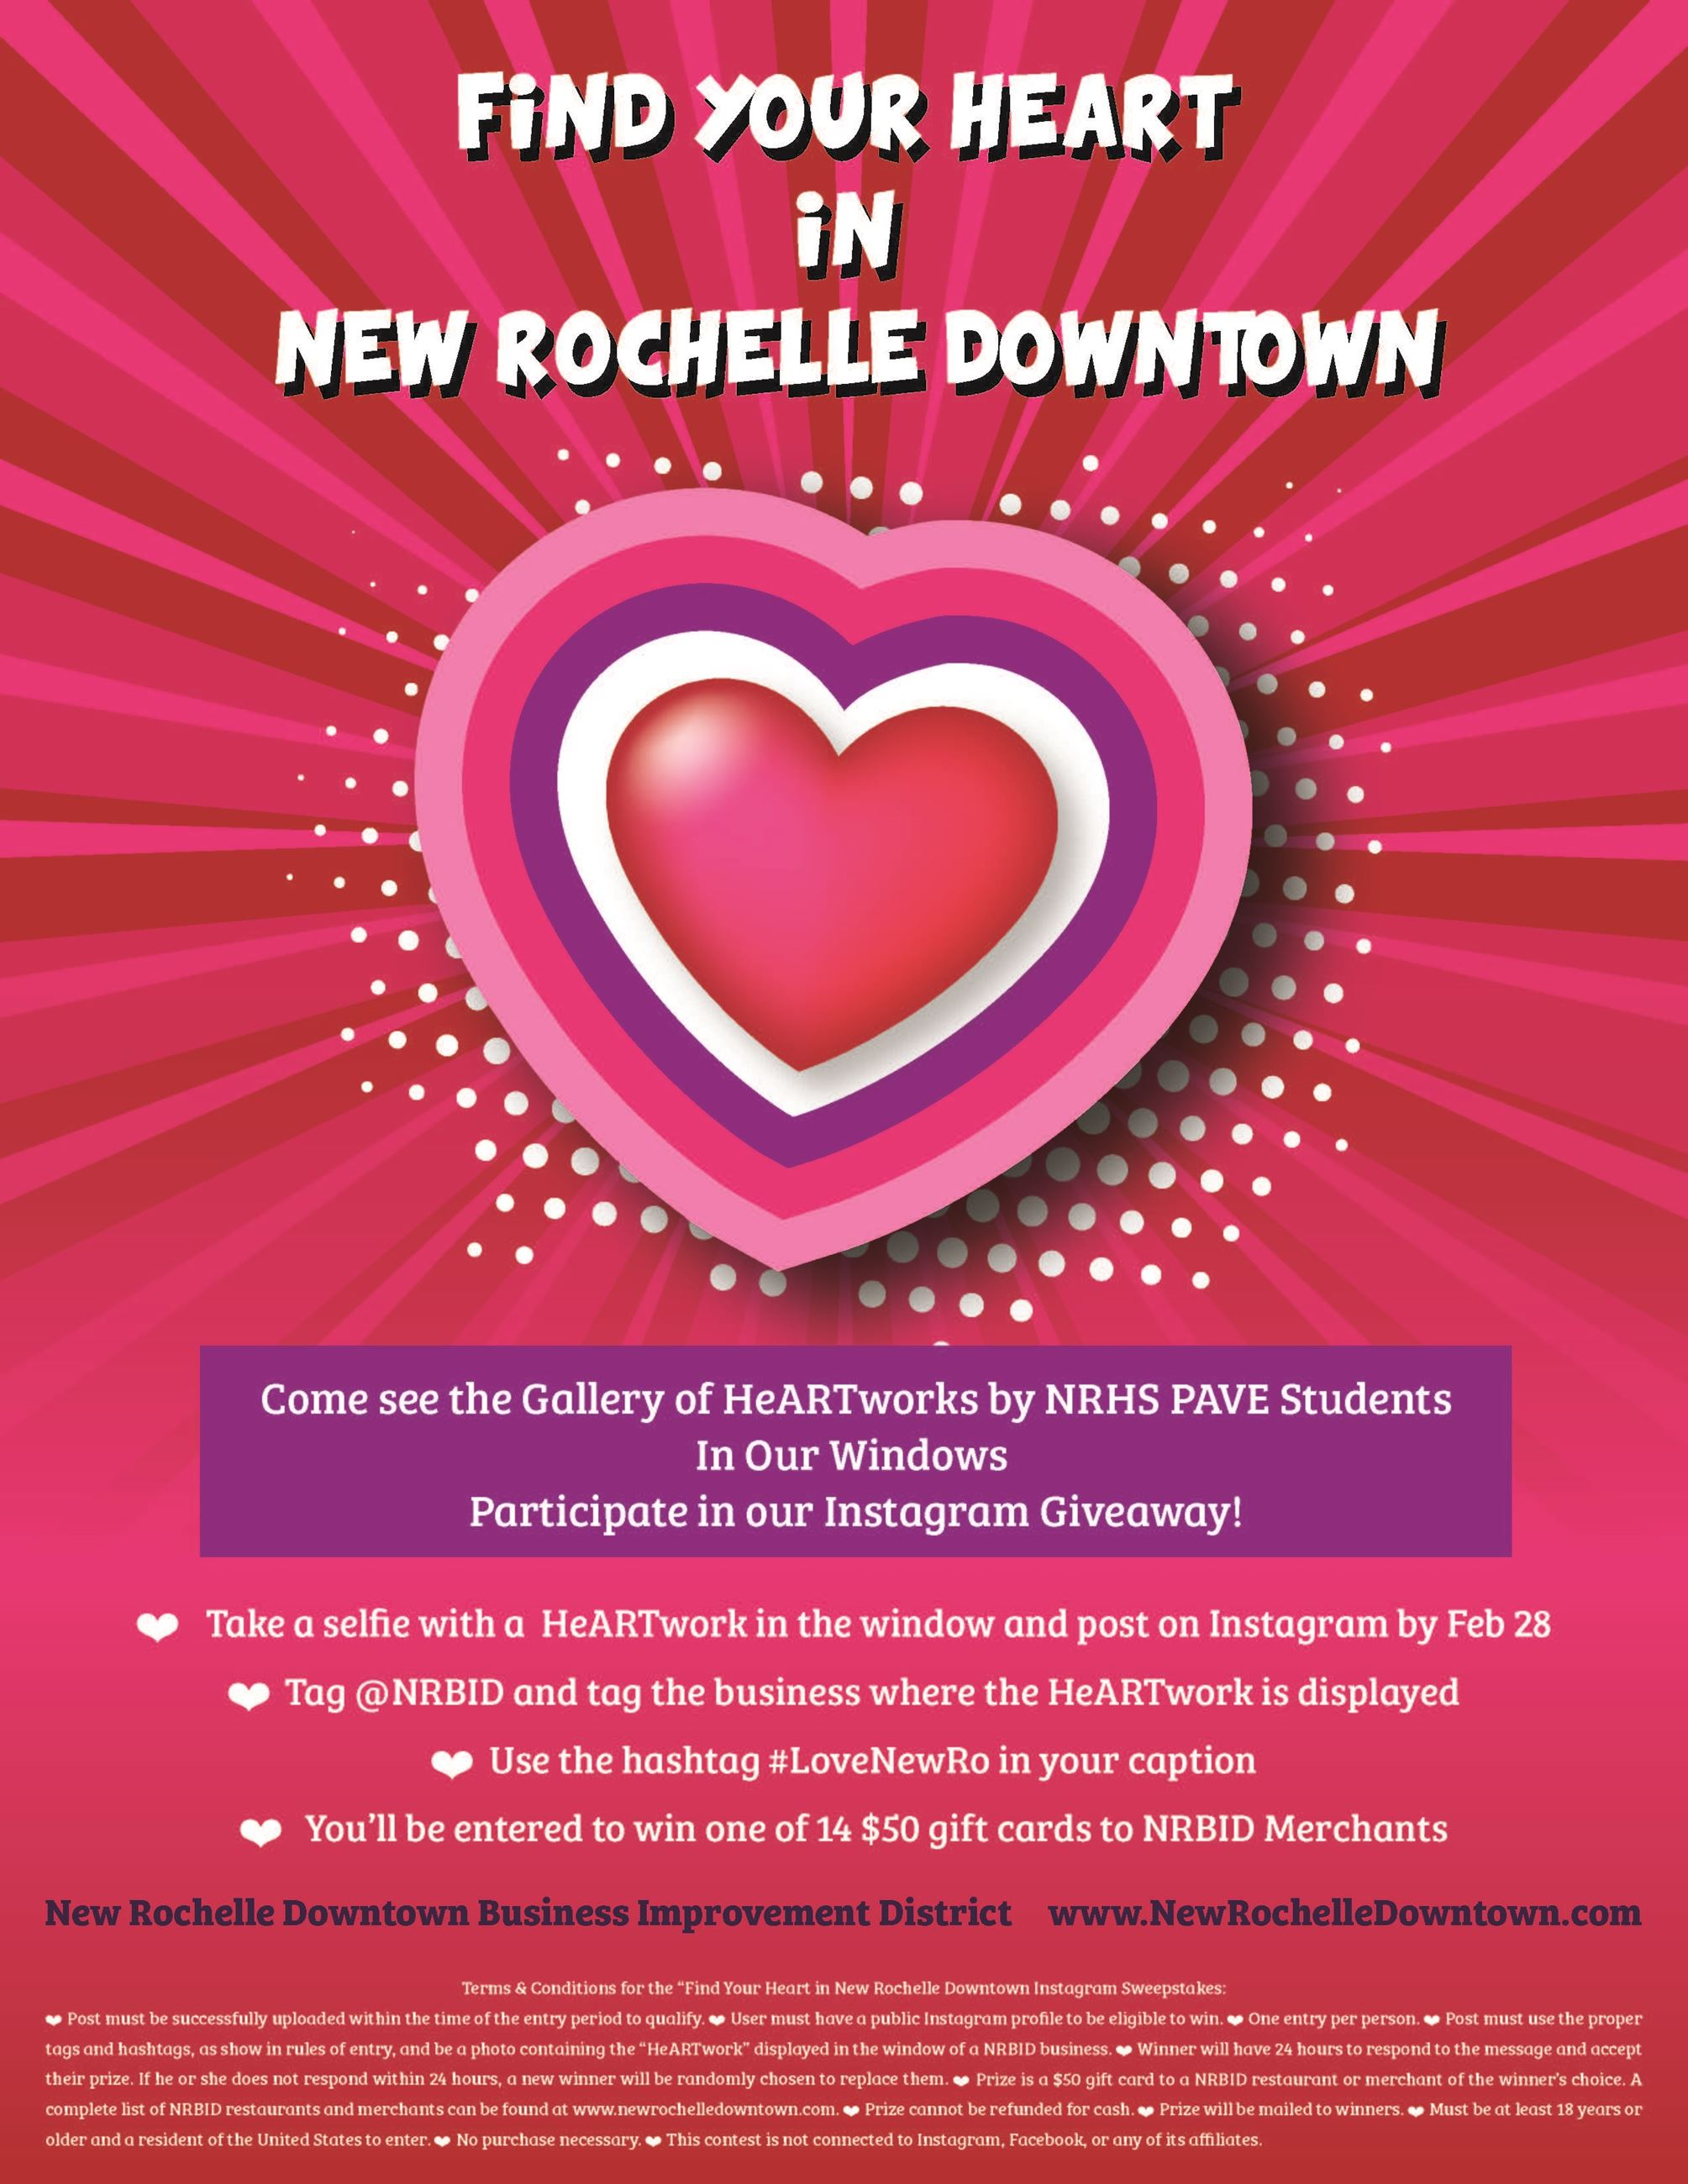 CORR FINAL NRBID Find Your Heart in New Rochelle Downtown